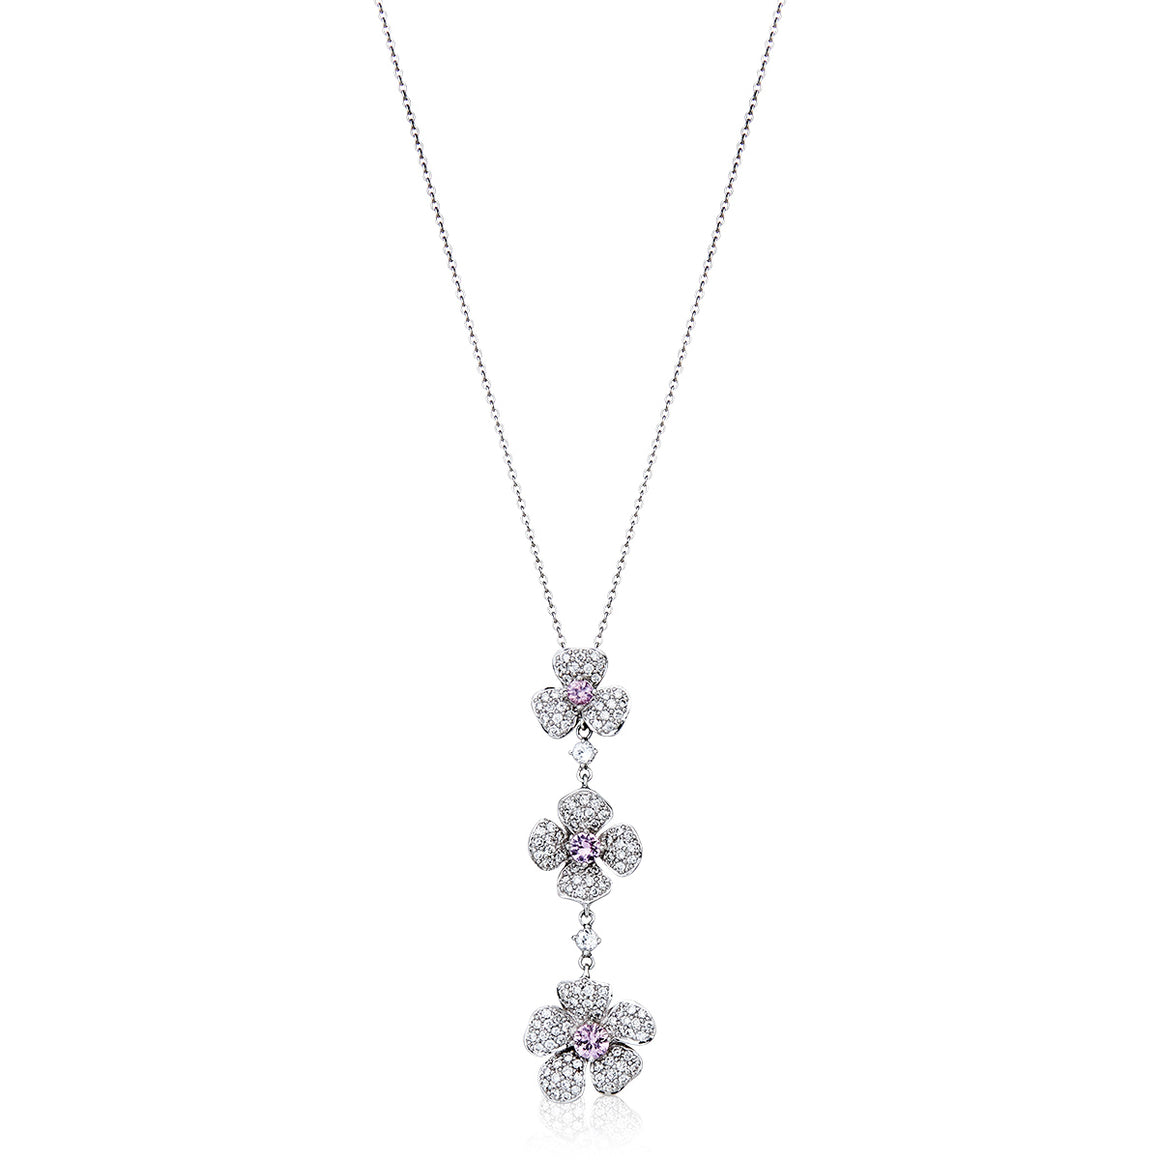 Spring Flower Sapphire and Diamond Necklace - Gemma Stone Jewellery